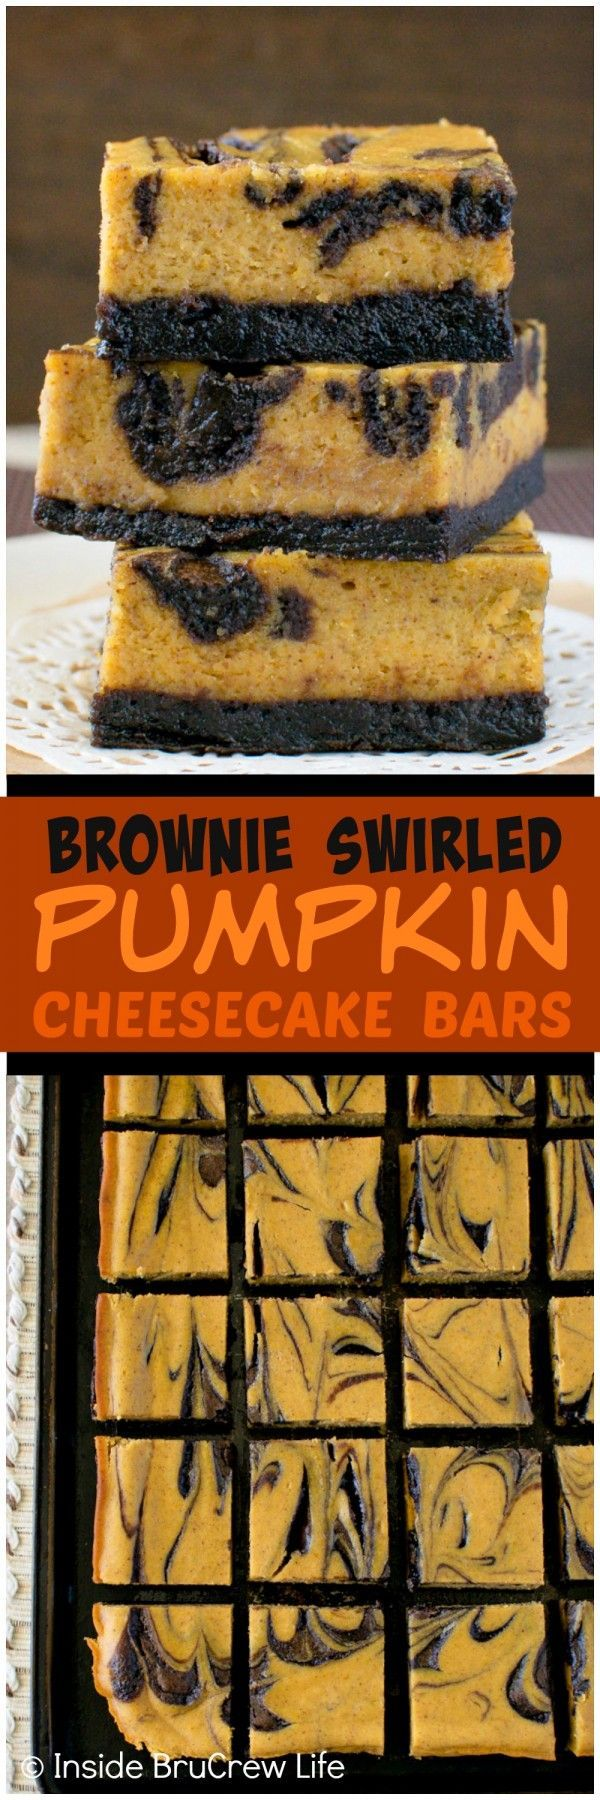 Brownie Swirled Pumpkin Cheesecake Bars - creamy pumpkin cheesecake with chocolate crust and swirls on top. Great fall dessert recipe!